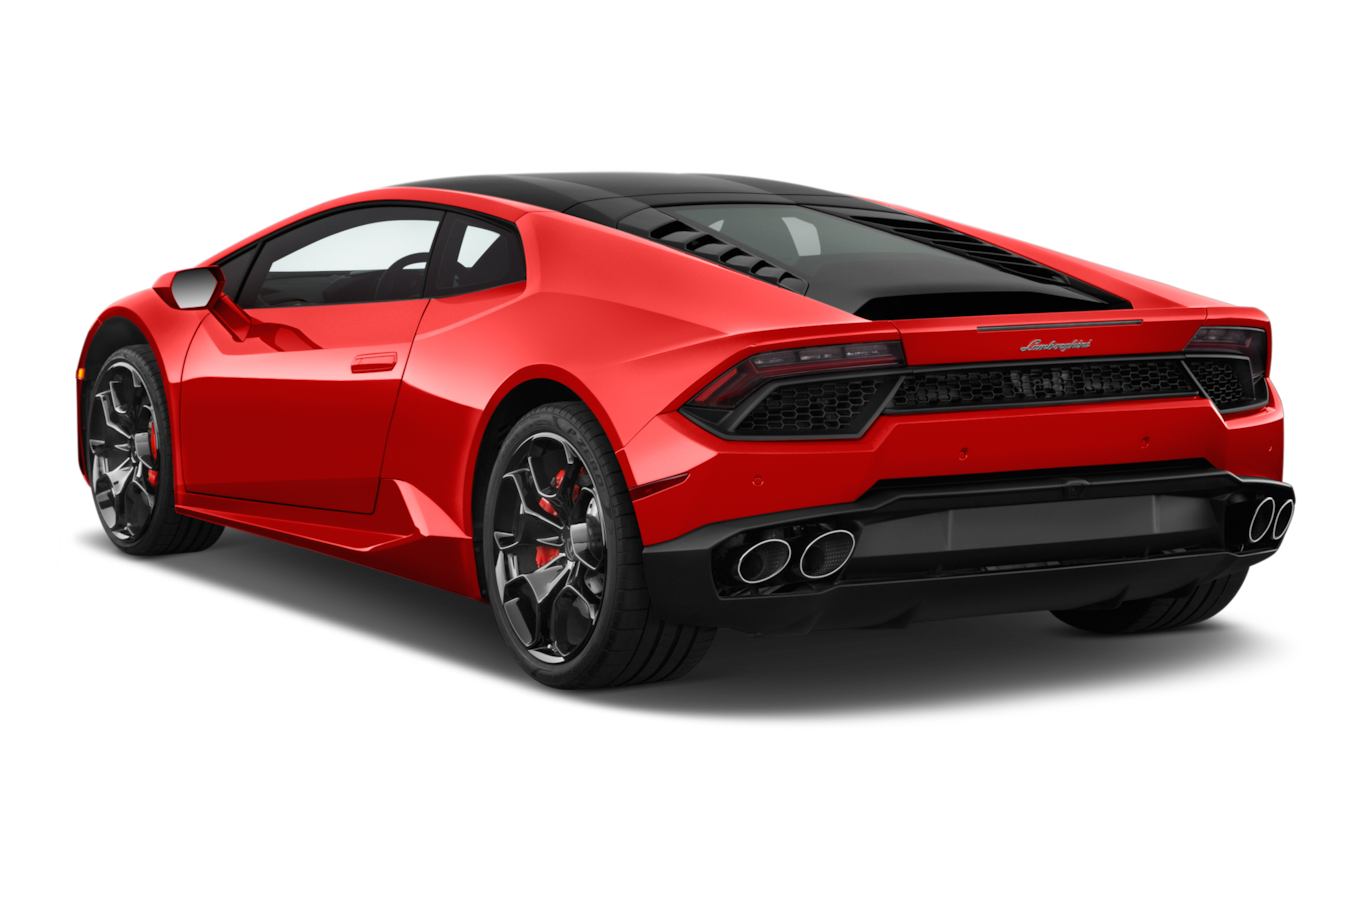 lamborghini huracan reviews huracan prices #25554